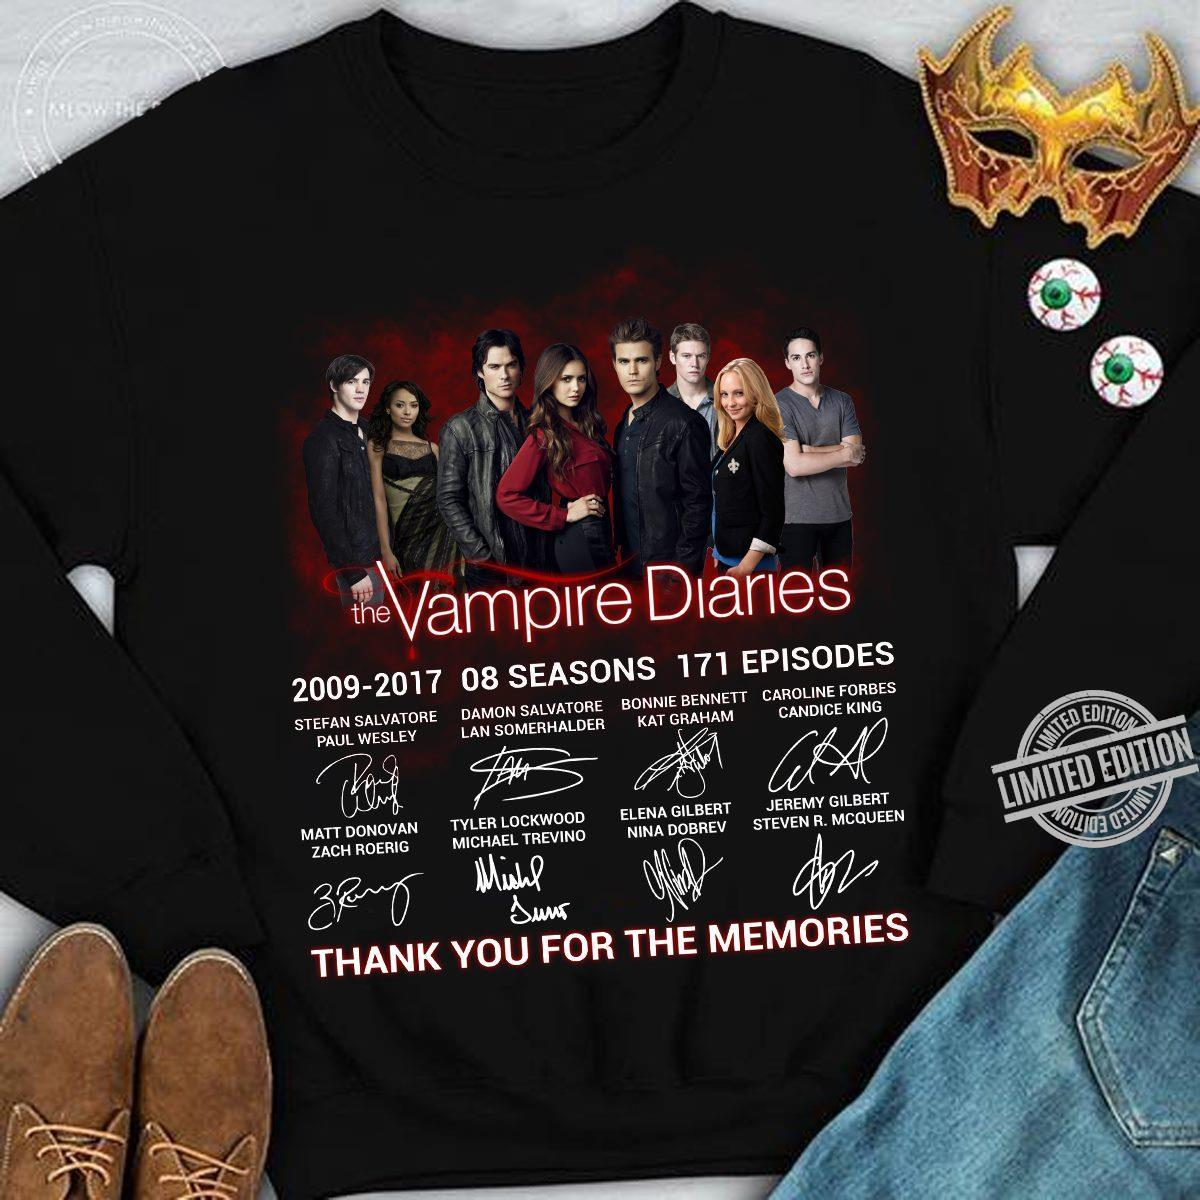 The Vampire Diaries 2009 2017 08 Seasons 171 Episodes Thank You For The Memories Shirt